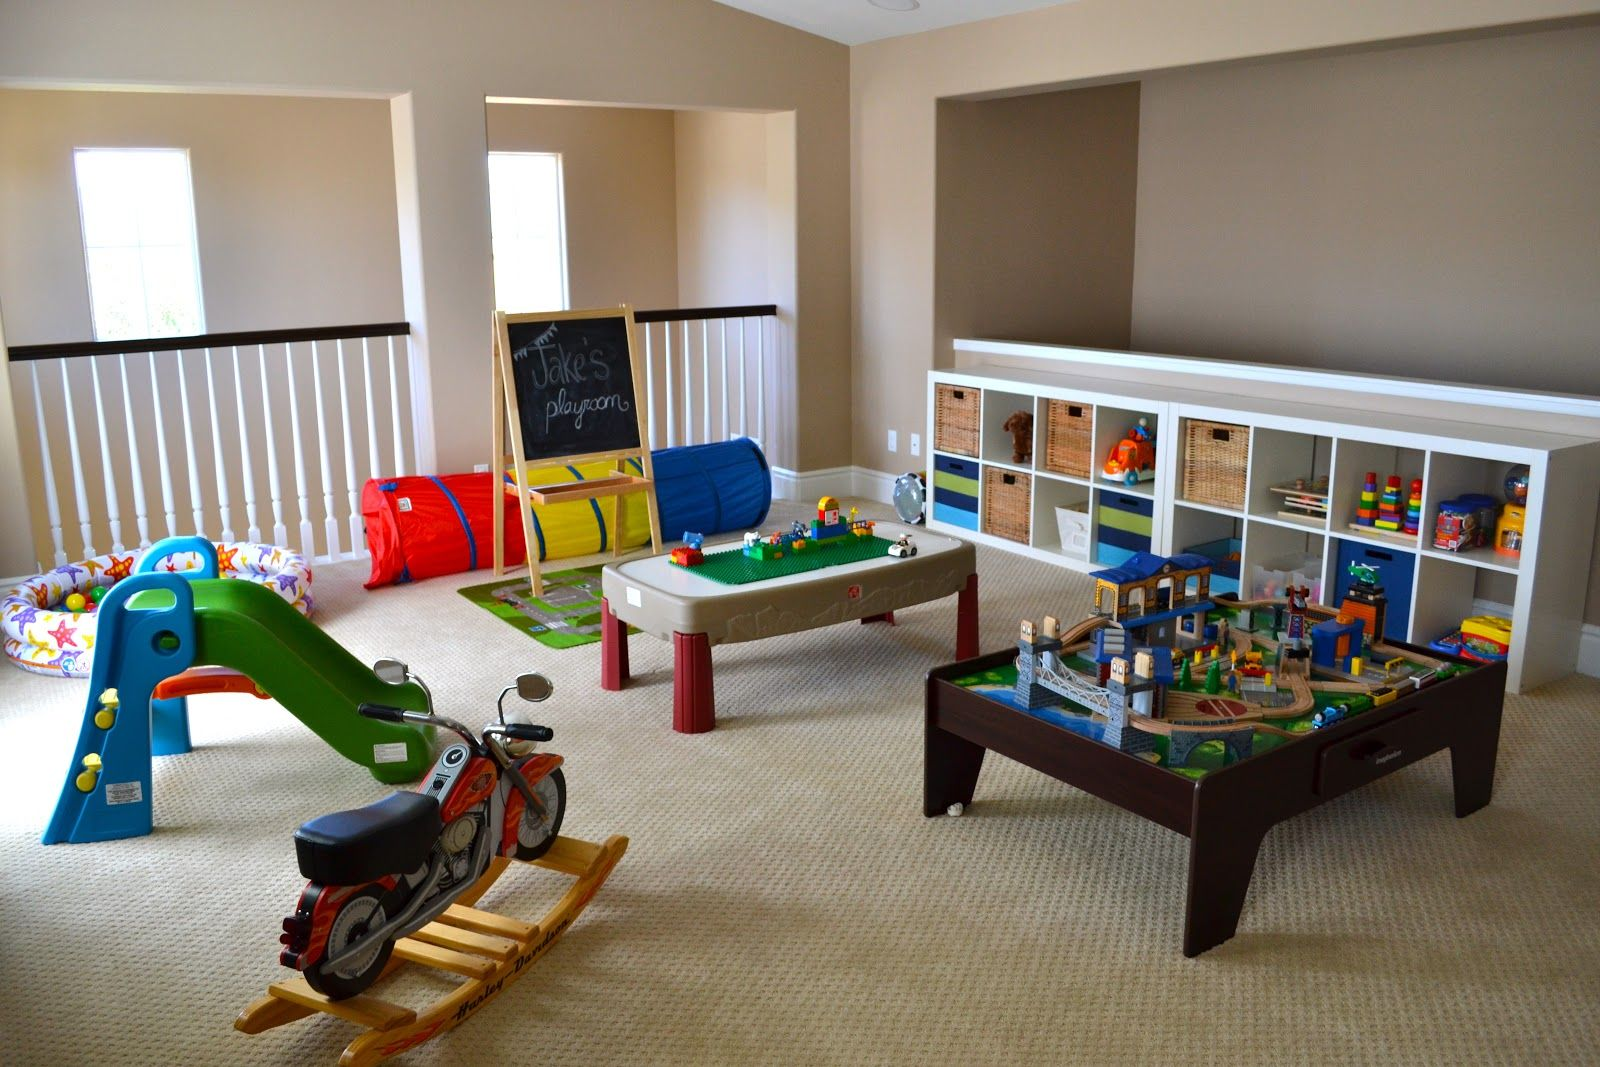 Kids Bedroom Toy Storage making a playroom in your attic | playrooms, playroom design and